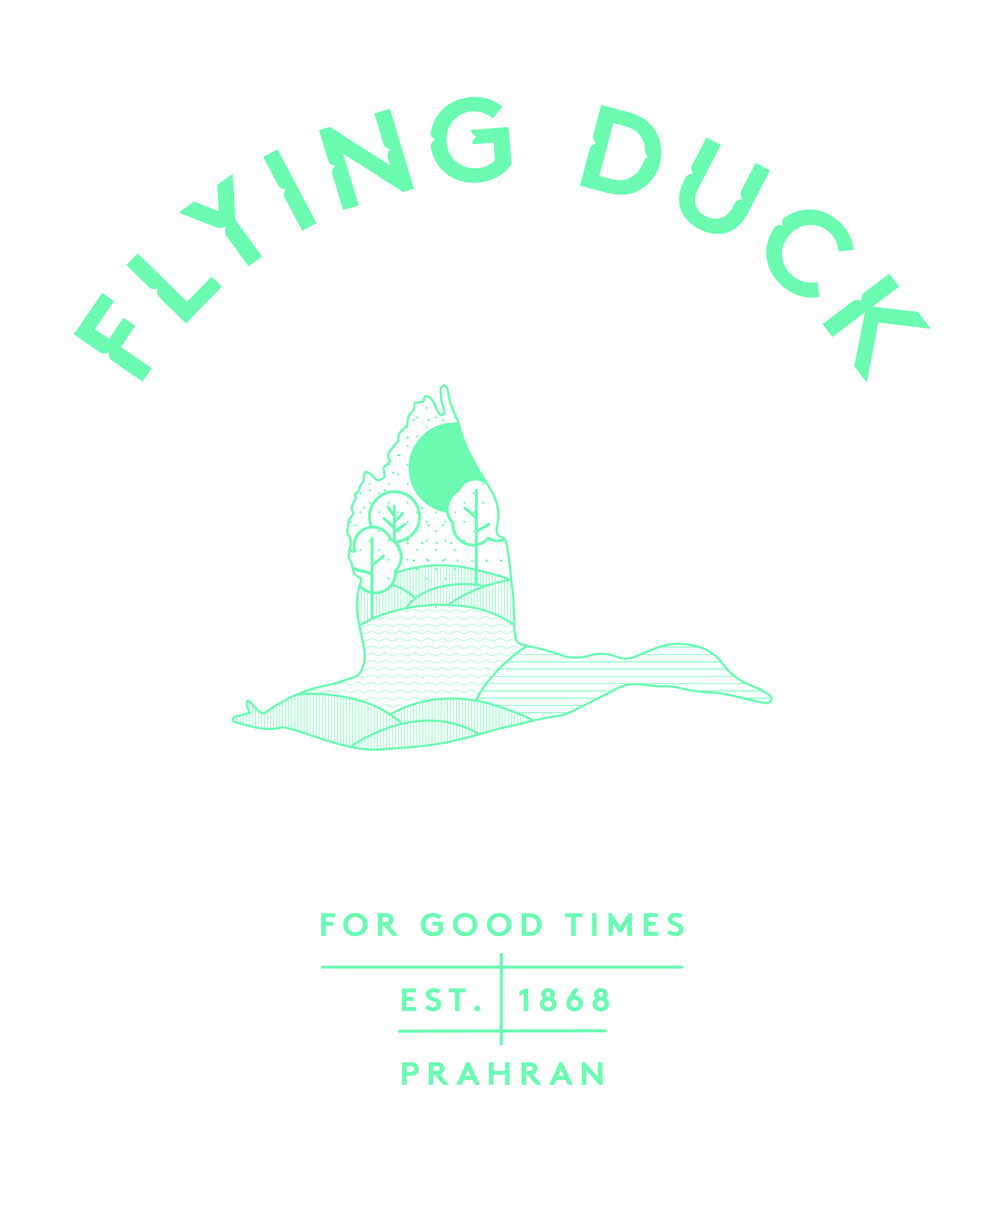 The Flying Duck Hotel